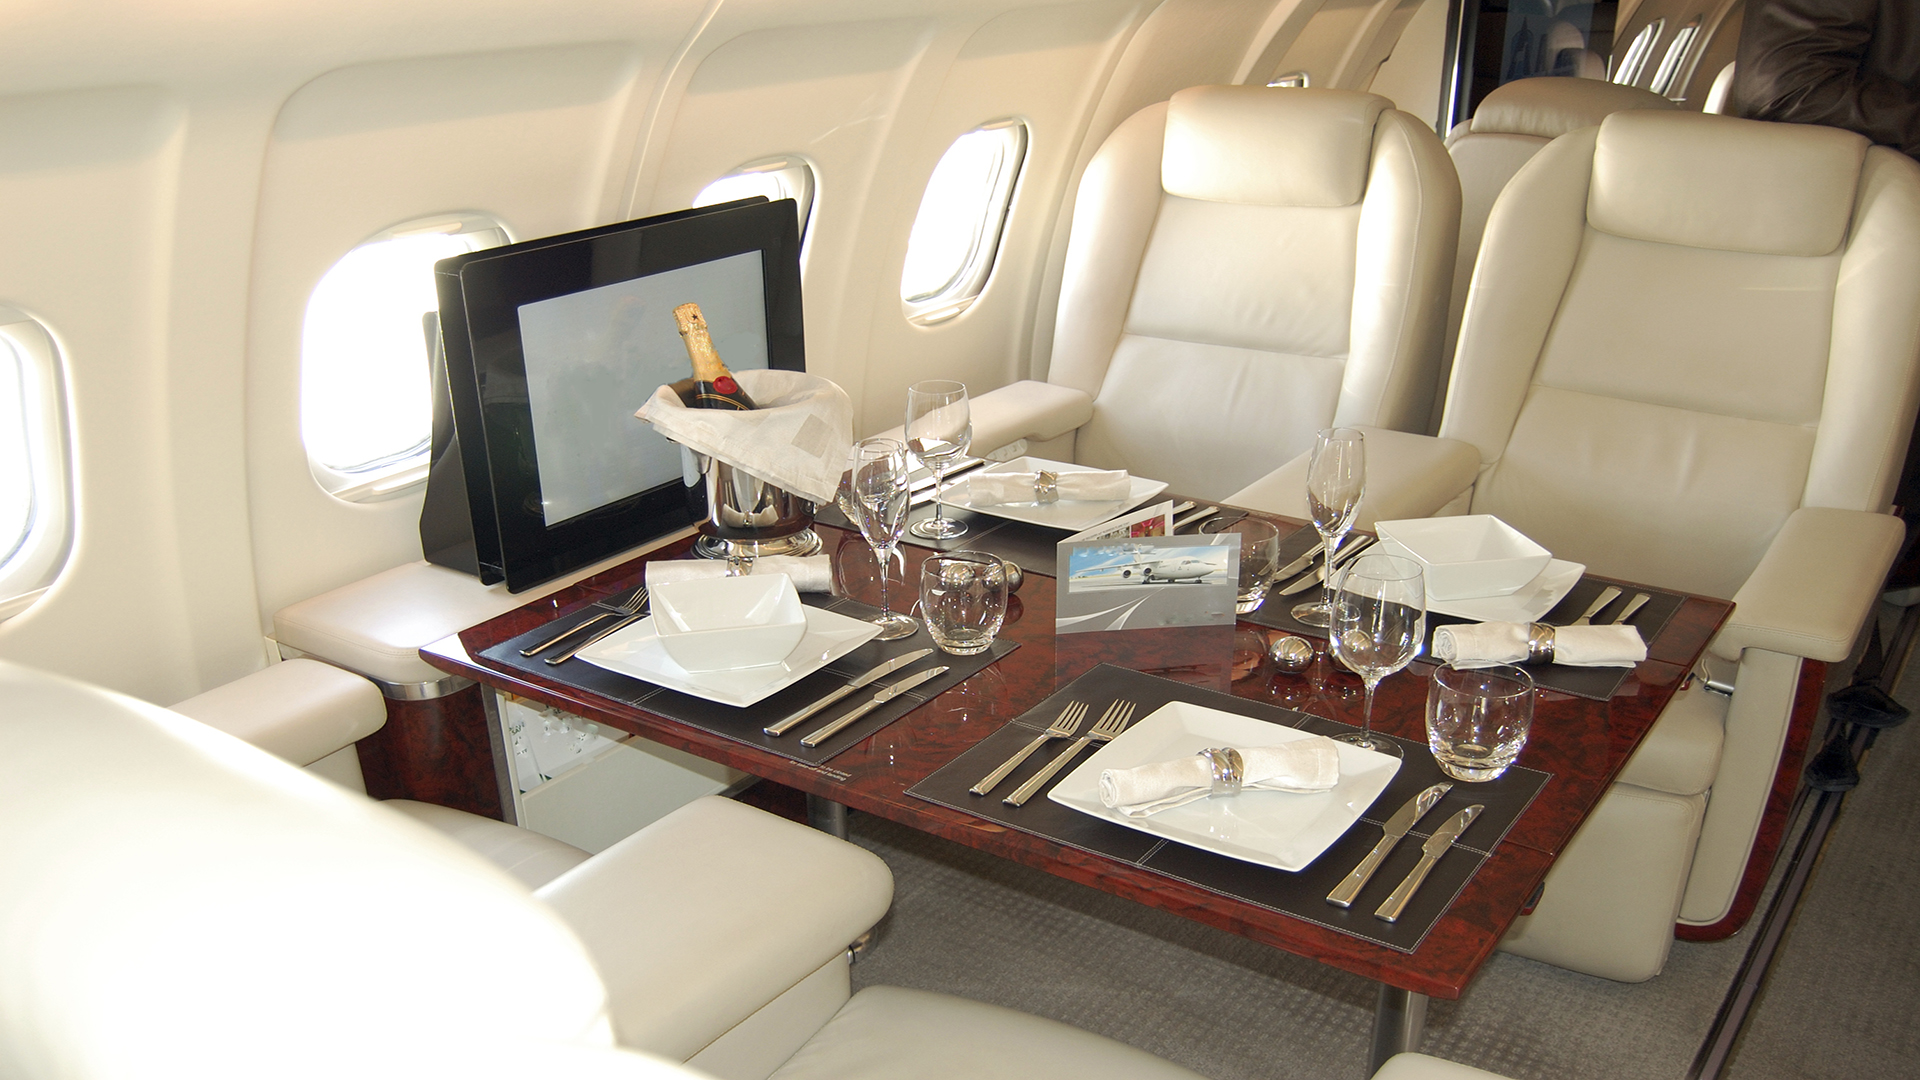 Alux.com - The Ultimate Jet Luxury Clip | Adagold Aviation | Adagold Luxe